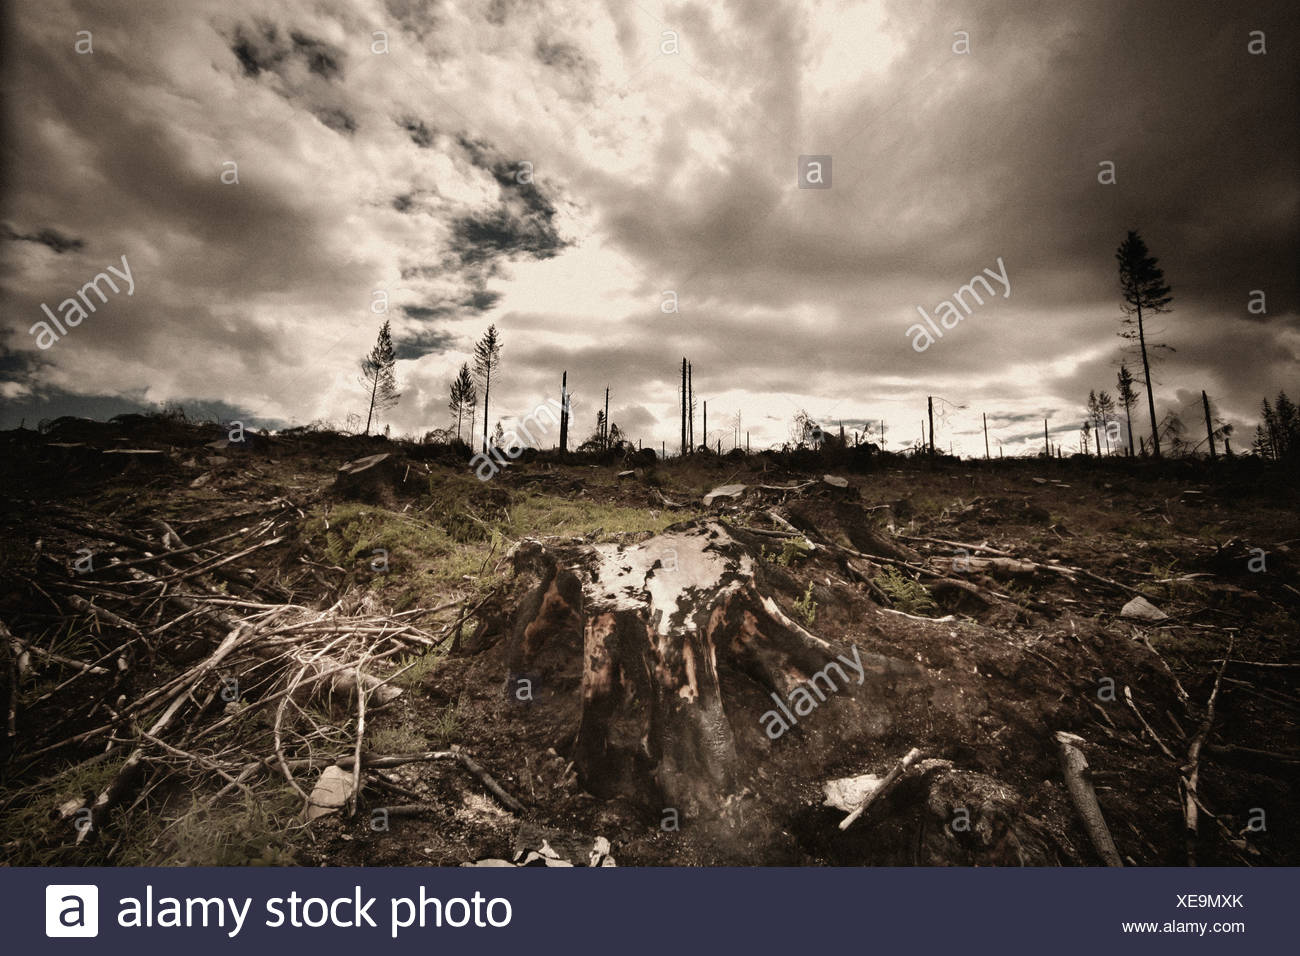 logging - Stock Image